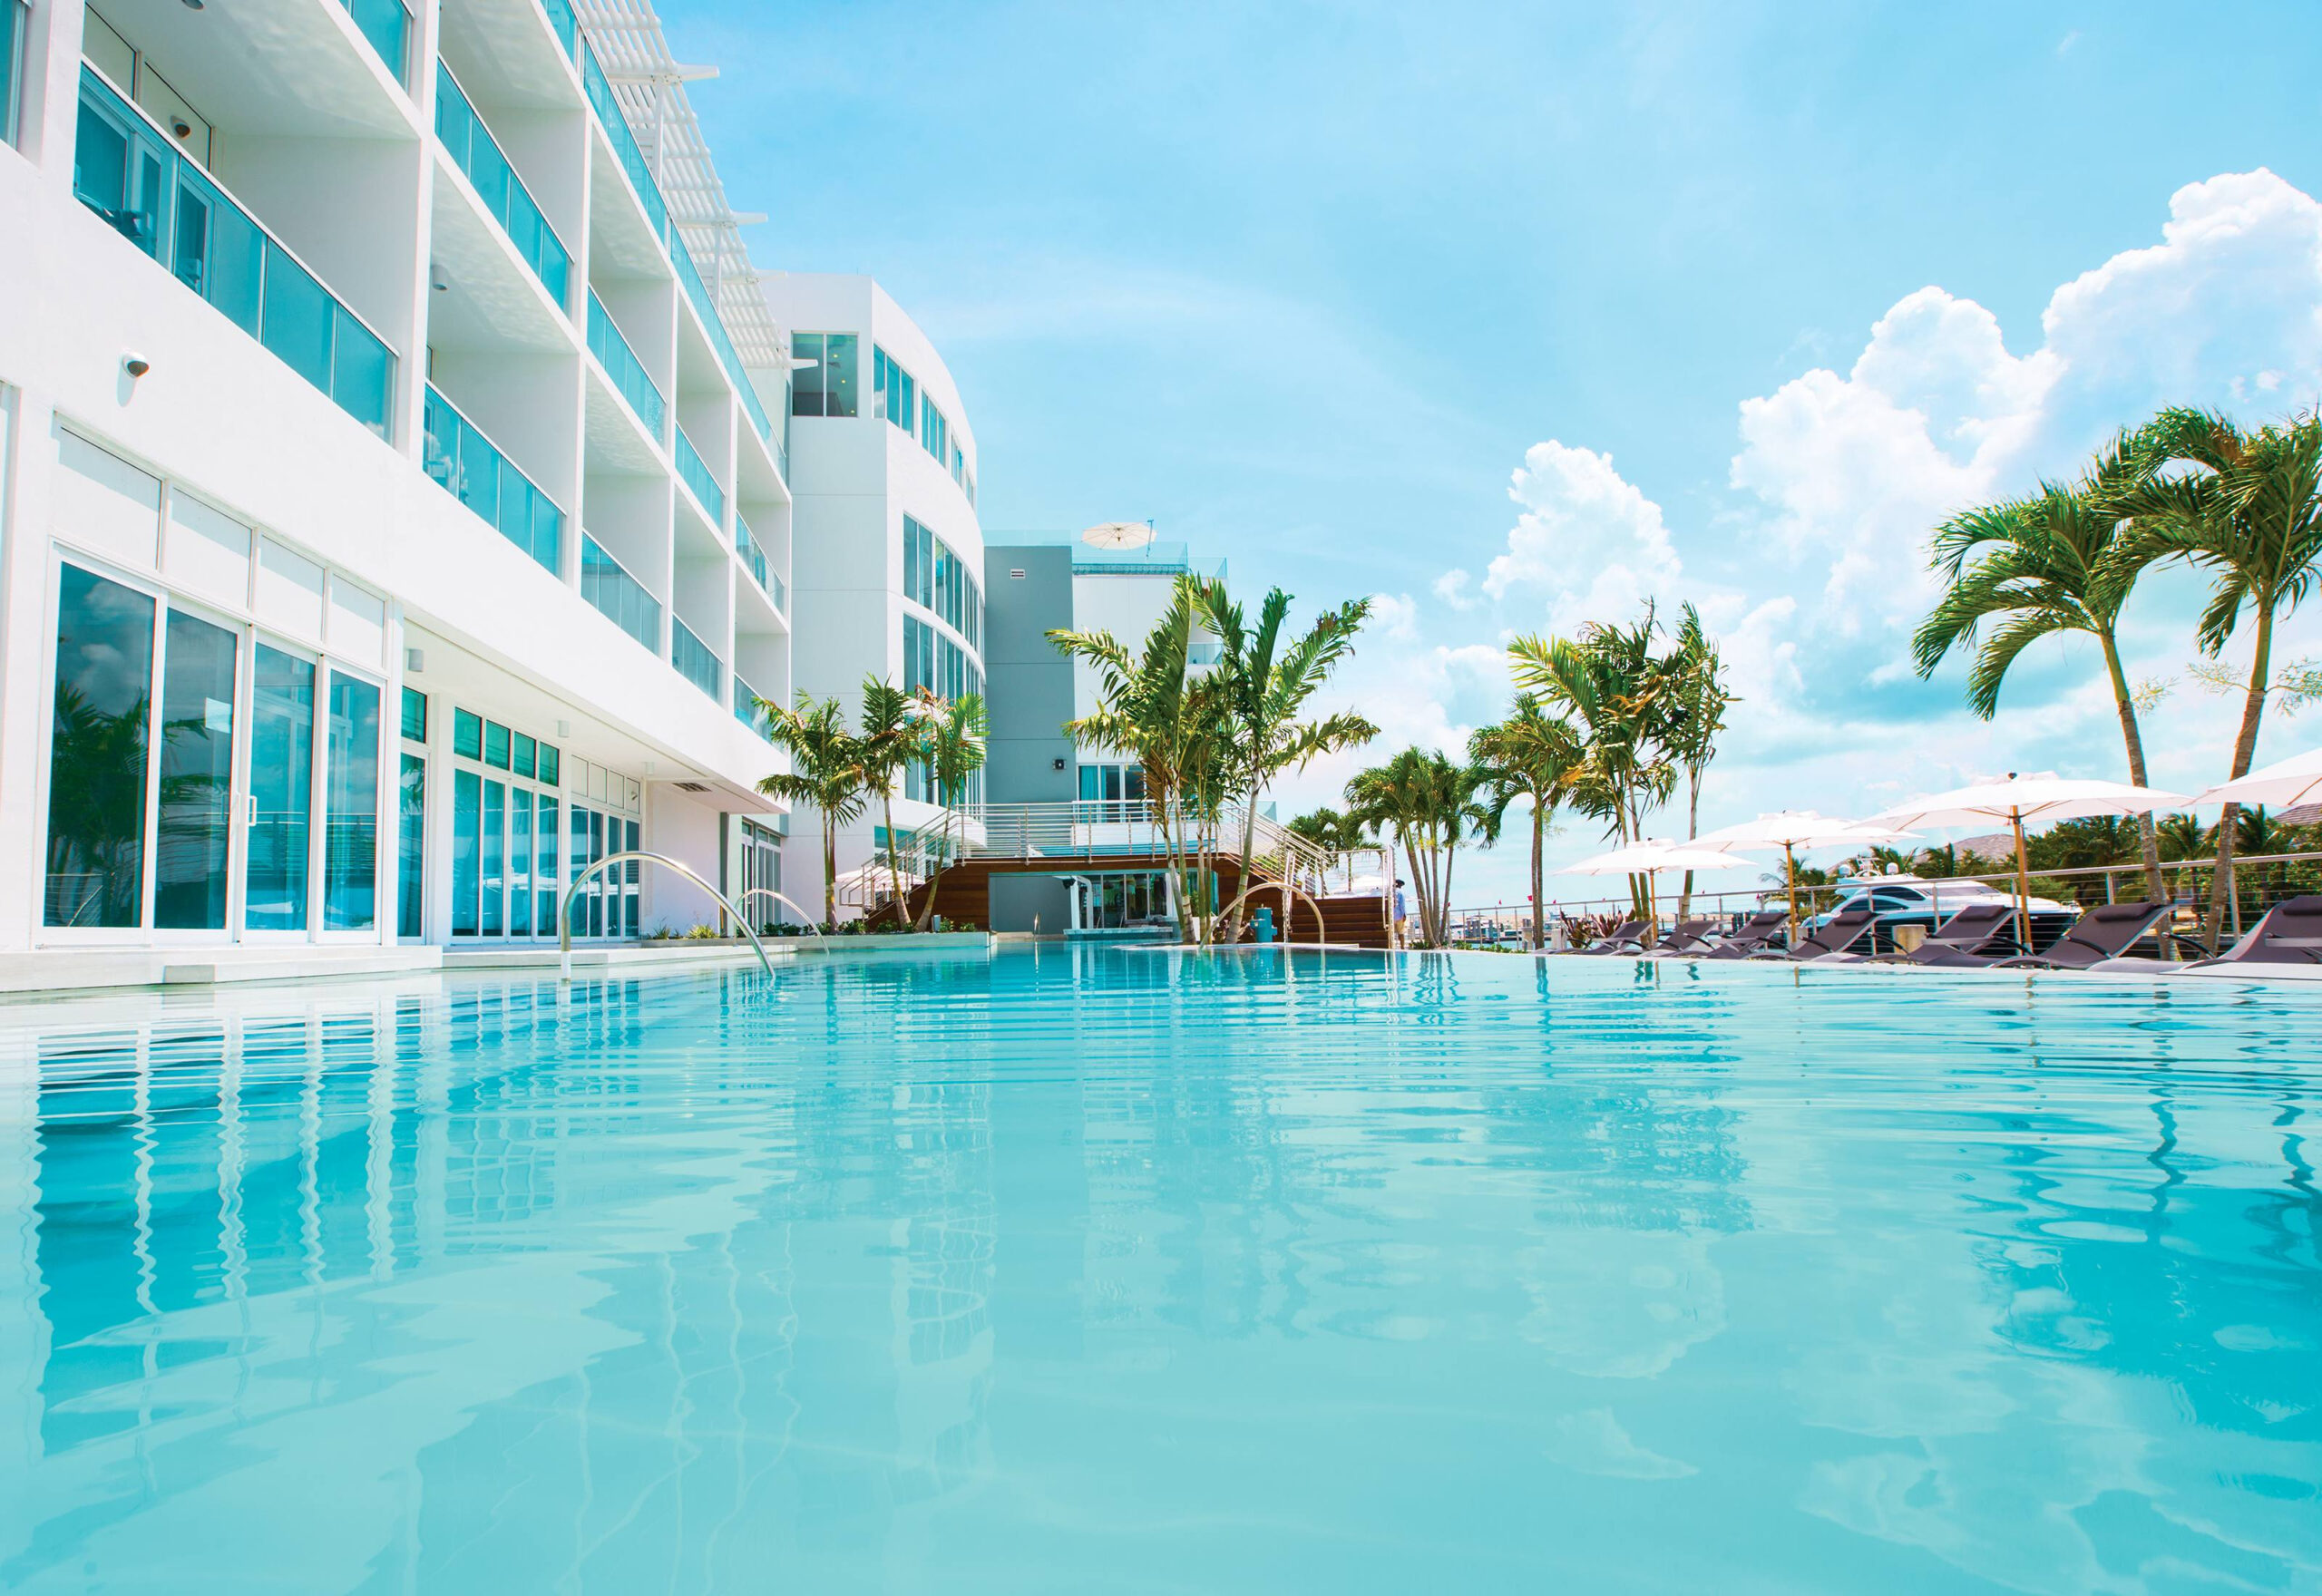 Bahamas Vacation Packages  Specials  View Our Current Offers